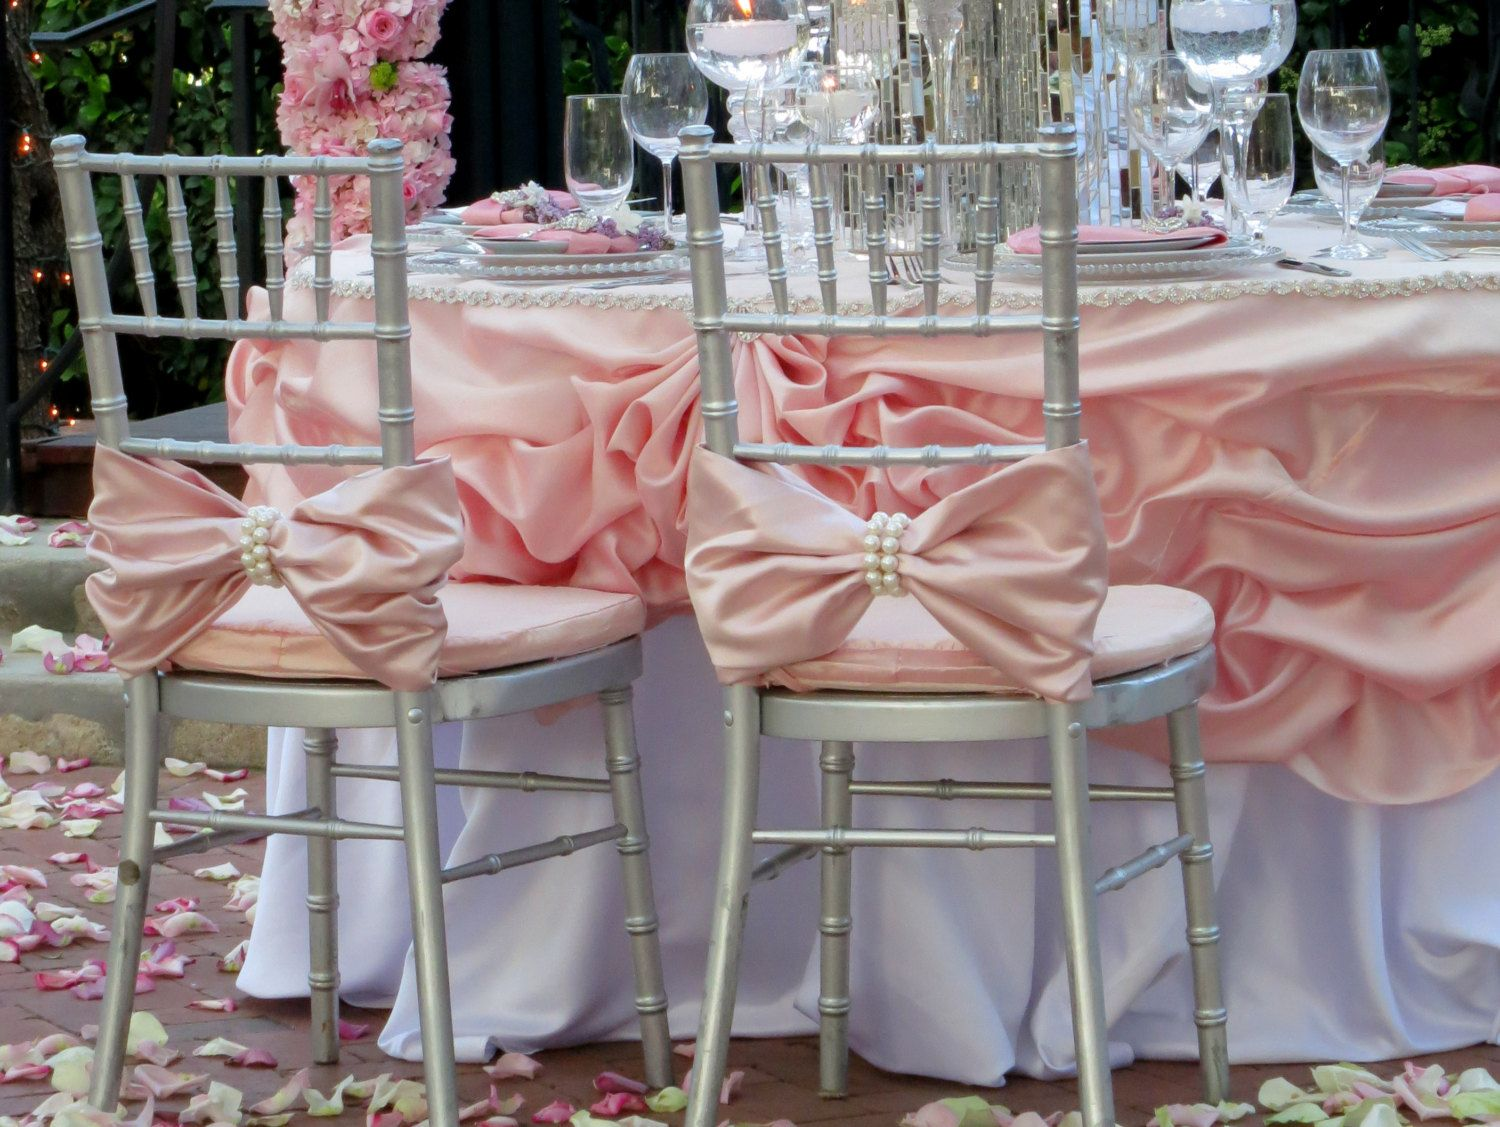 Sashes For Chairs 1068 best chair covers & wedding chairs images on pinterest